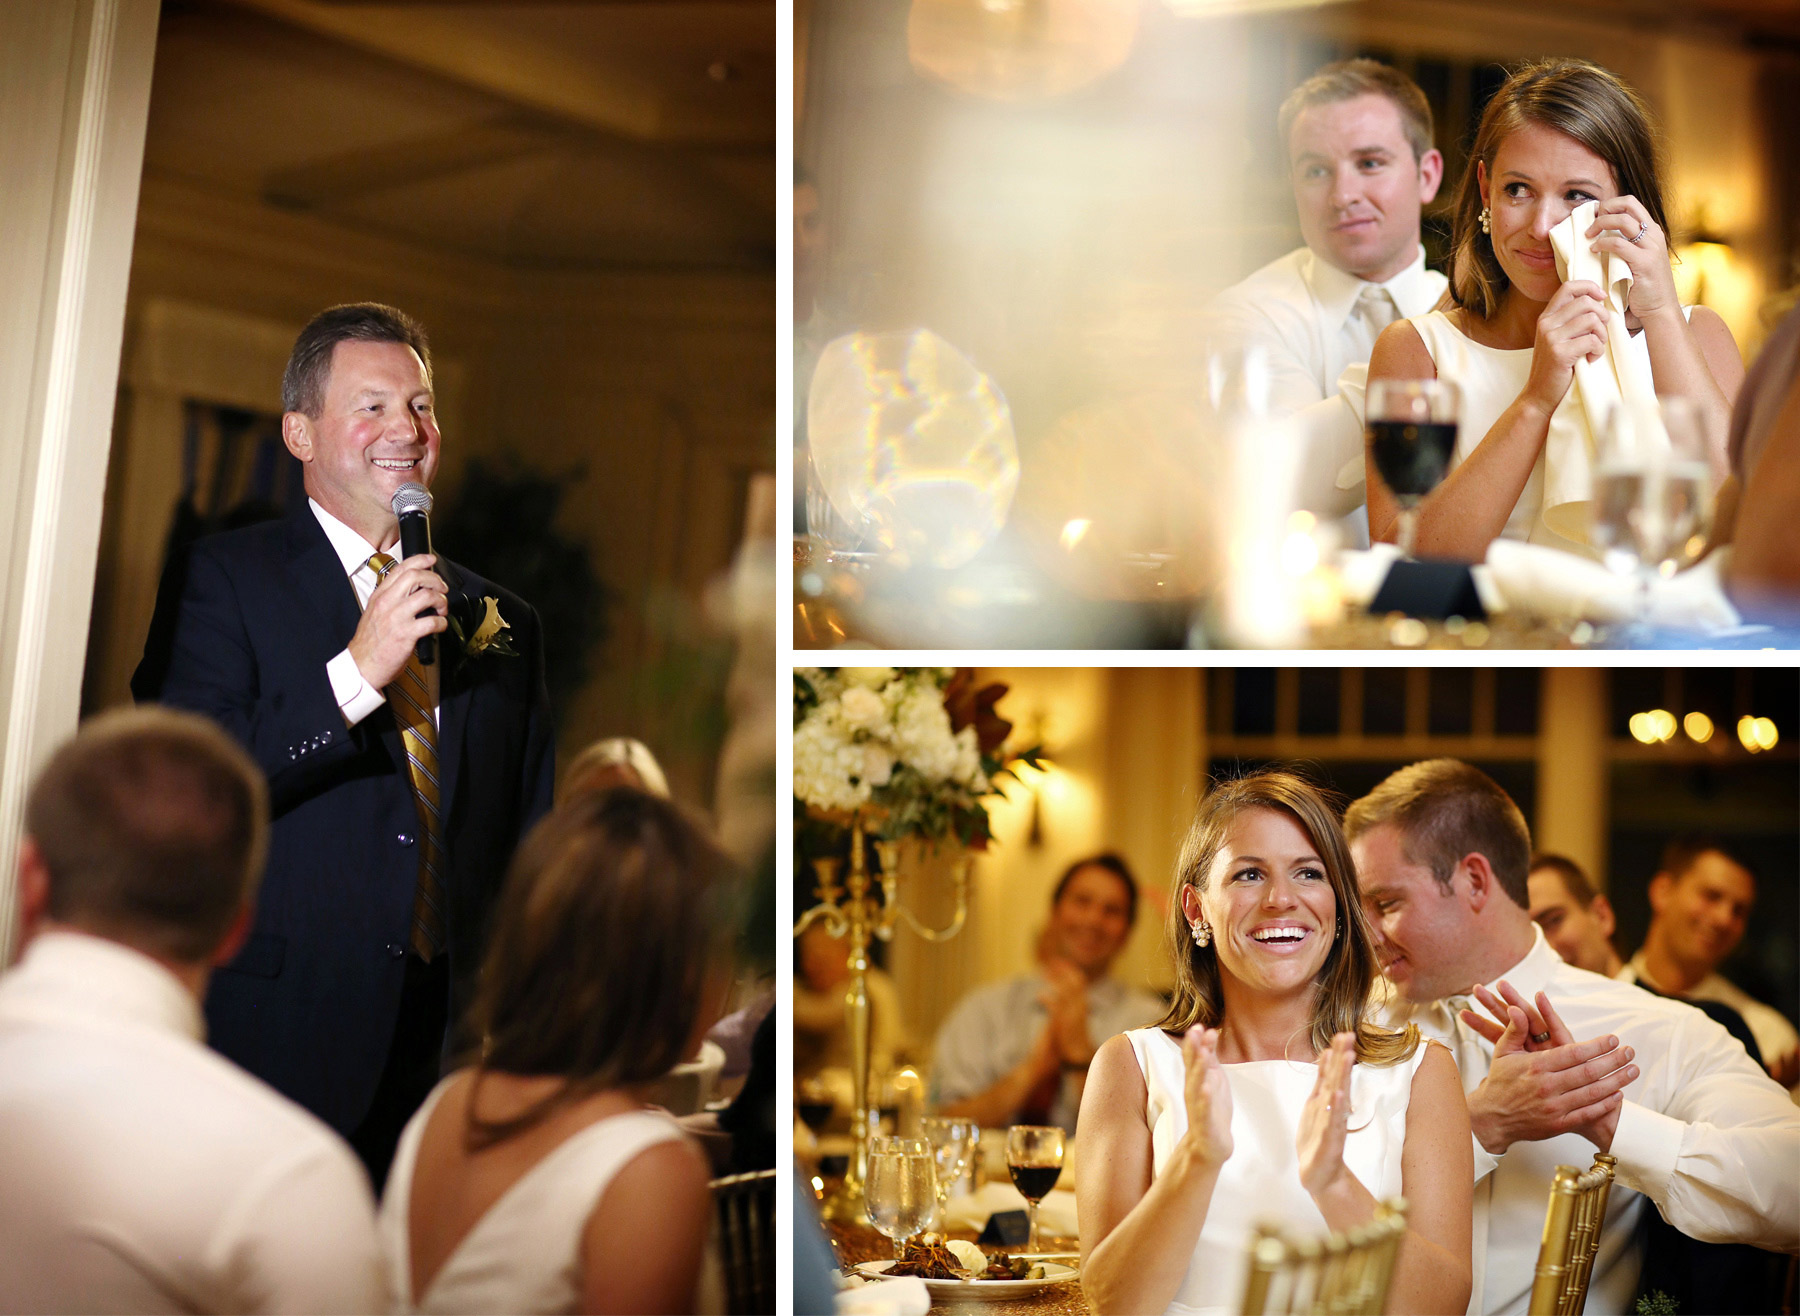 18-Minneapolis-Minnesota-Wedding-Photography-by-Vick-Photography-Woodhill-Country-Club-Reception-Elle-and-Tyler.jpg